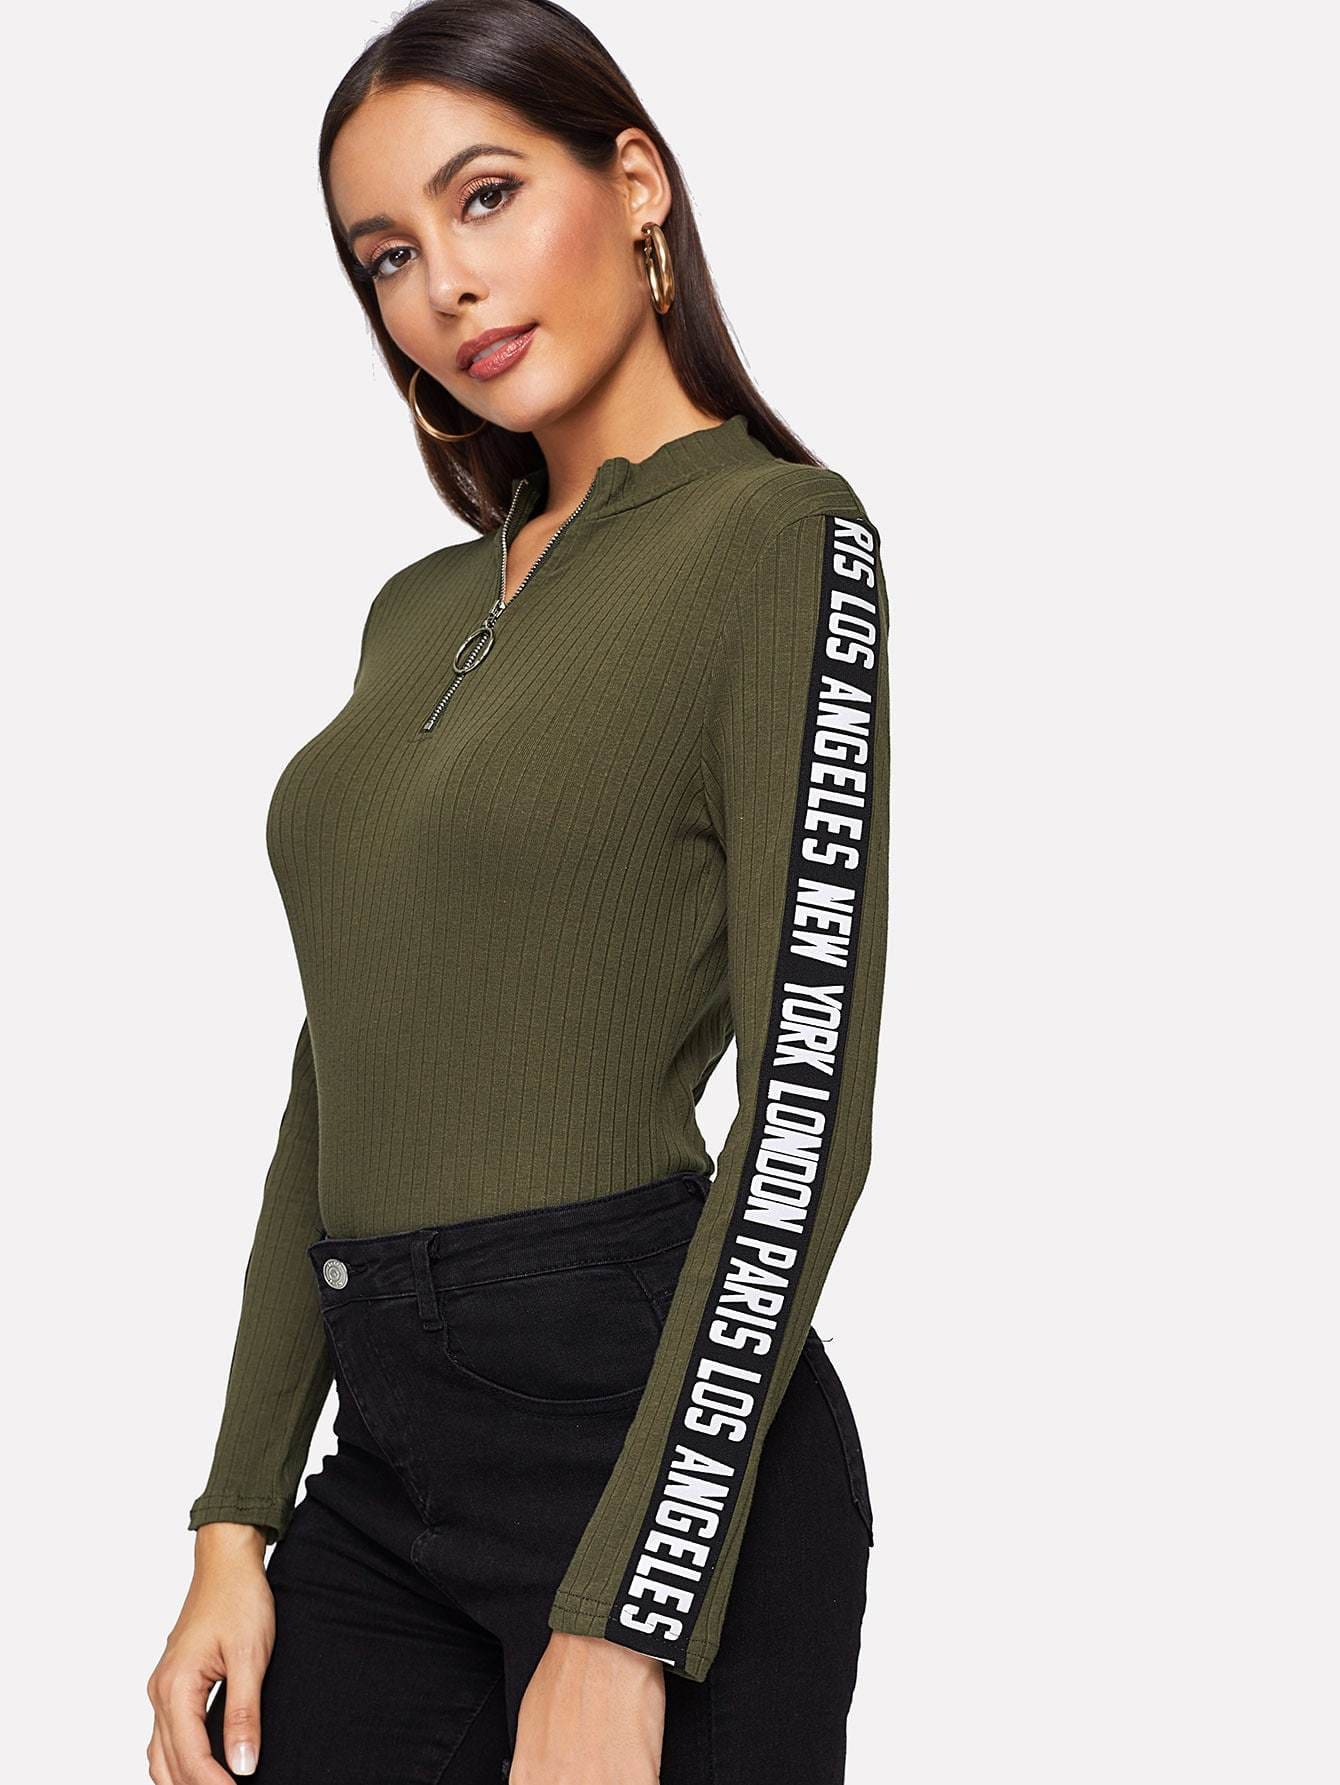 Zip Half Placket Letter Ribbed Knit Tee - Gym Tops